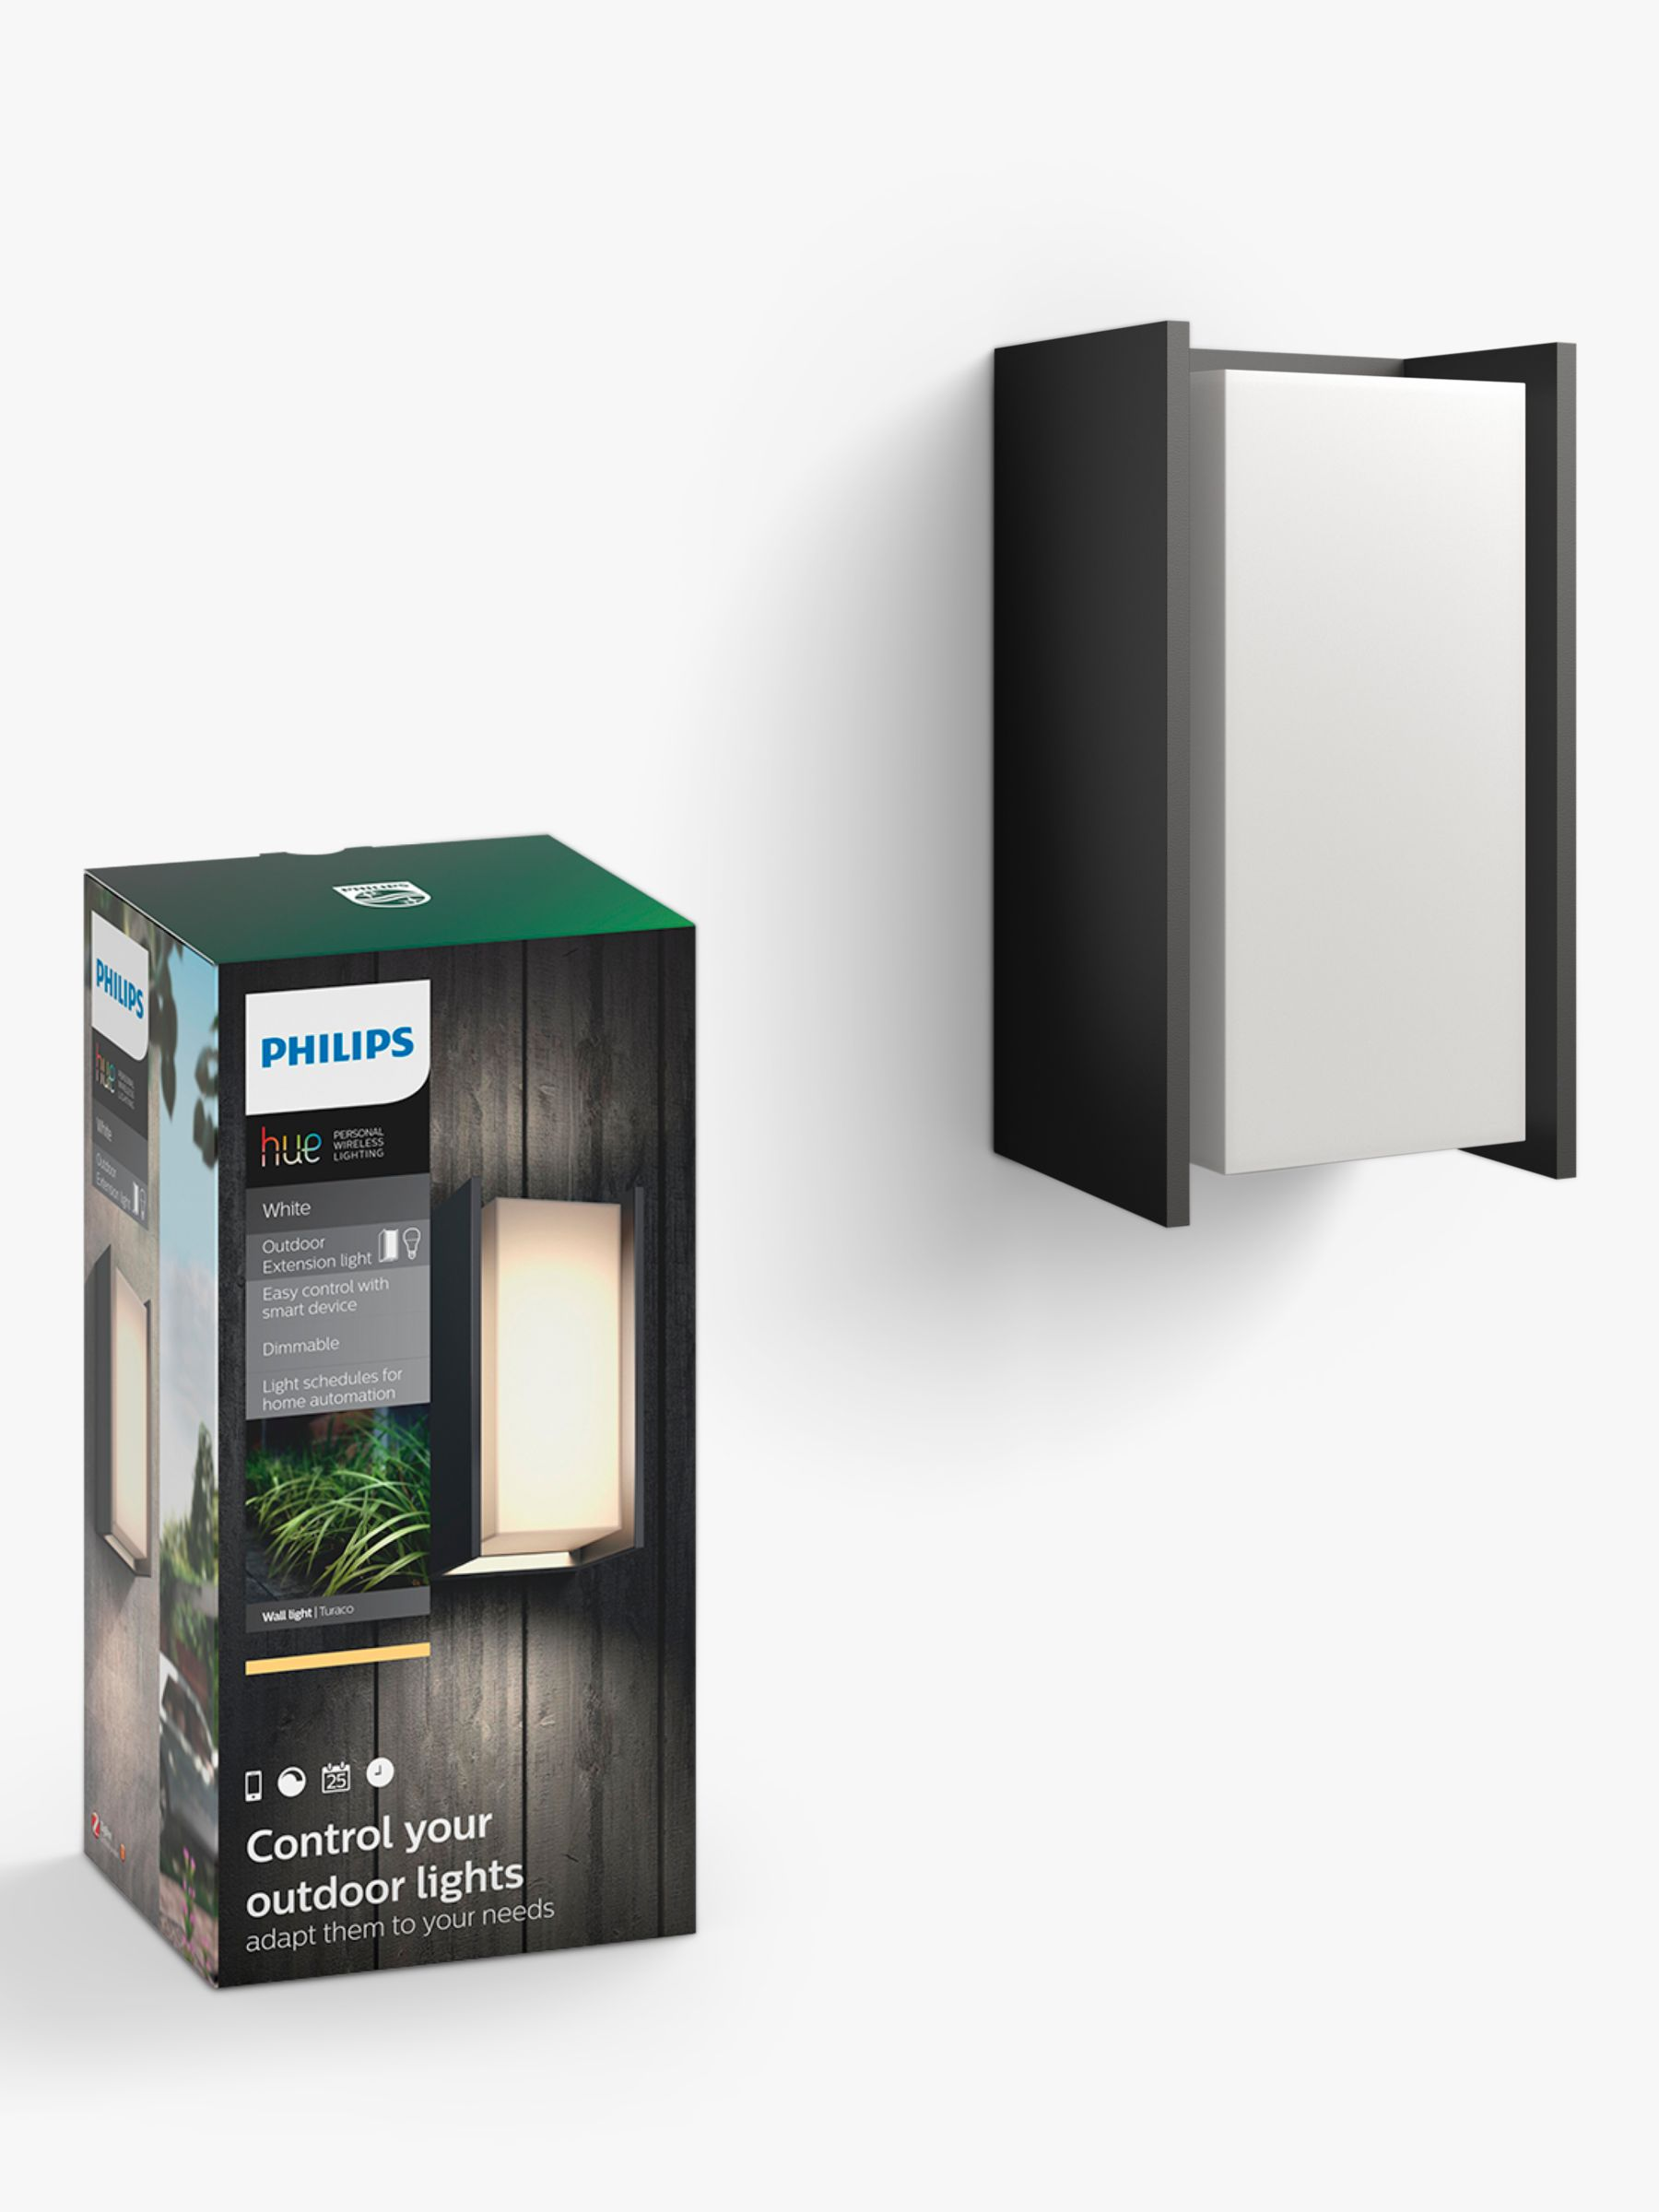 Philips Philips Hue Turaco LED Outdoor Wall Light, Black